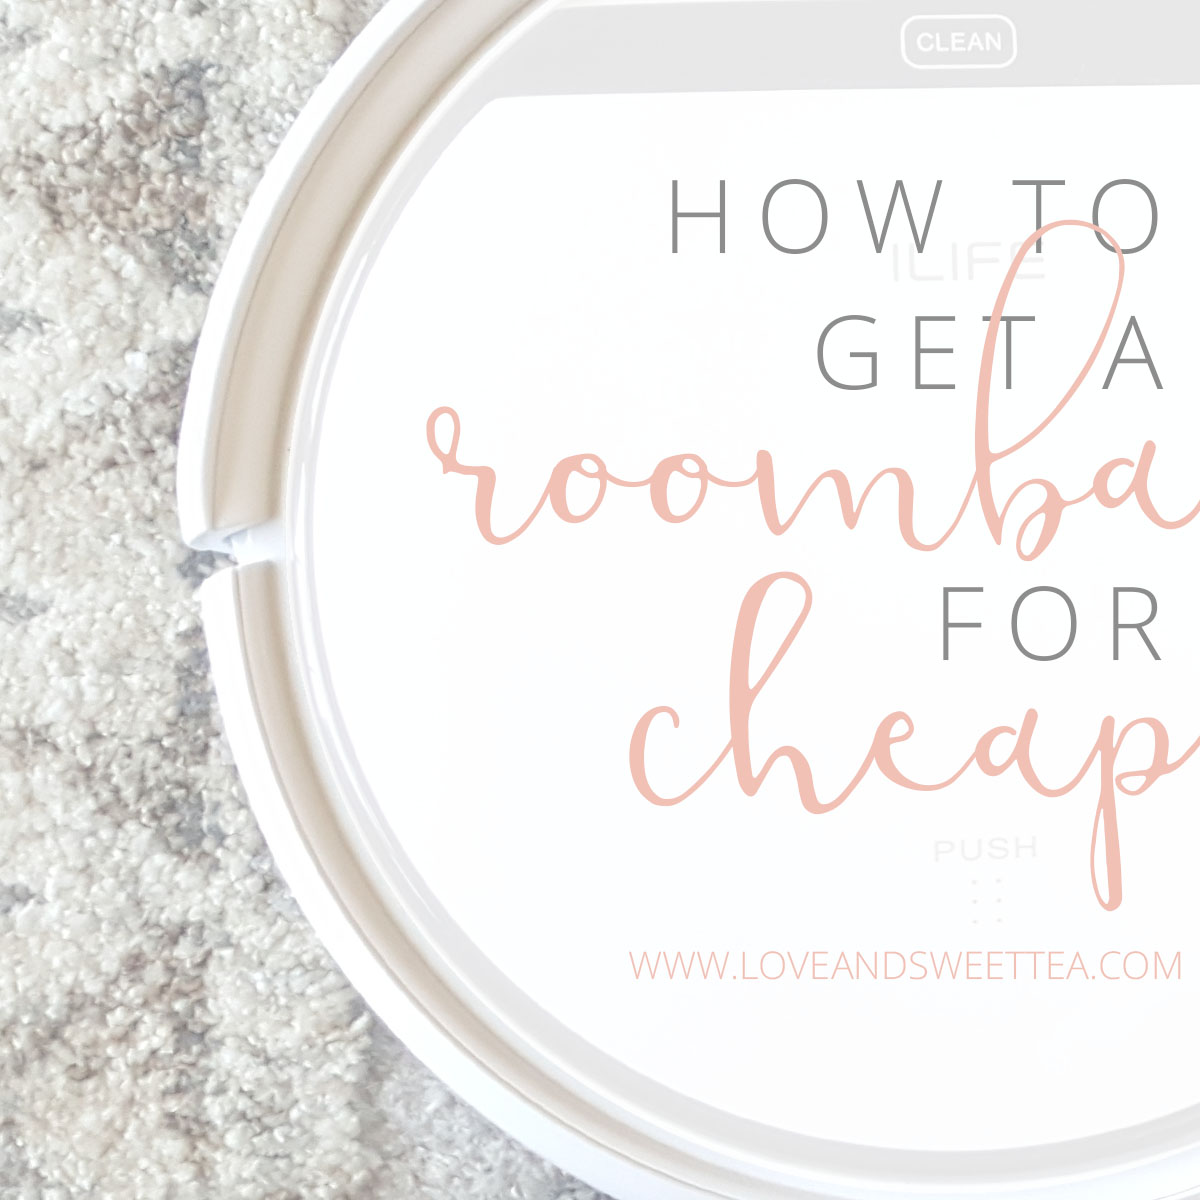 How to Get a Robotic Vacuum Cleaner for Cheap